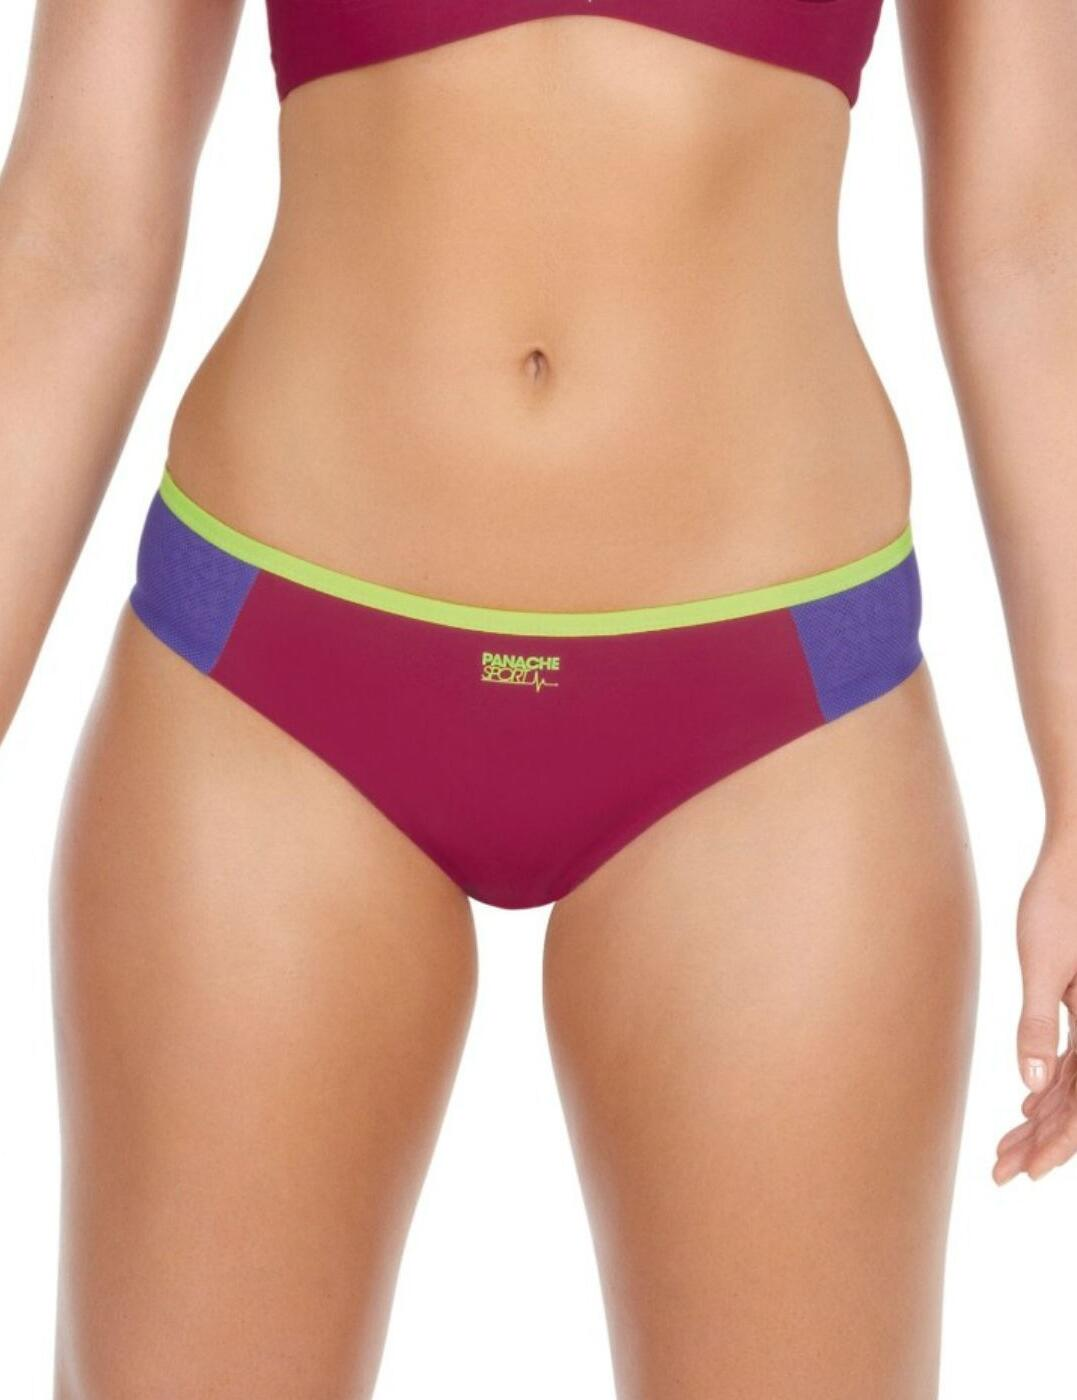 7342 Panache Sport brief  Raspberry FREE UK POST - 7342 Raspberry